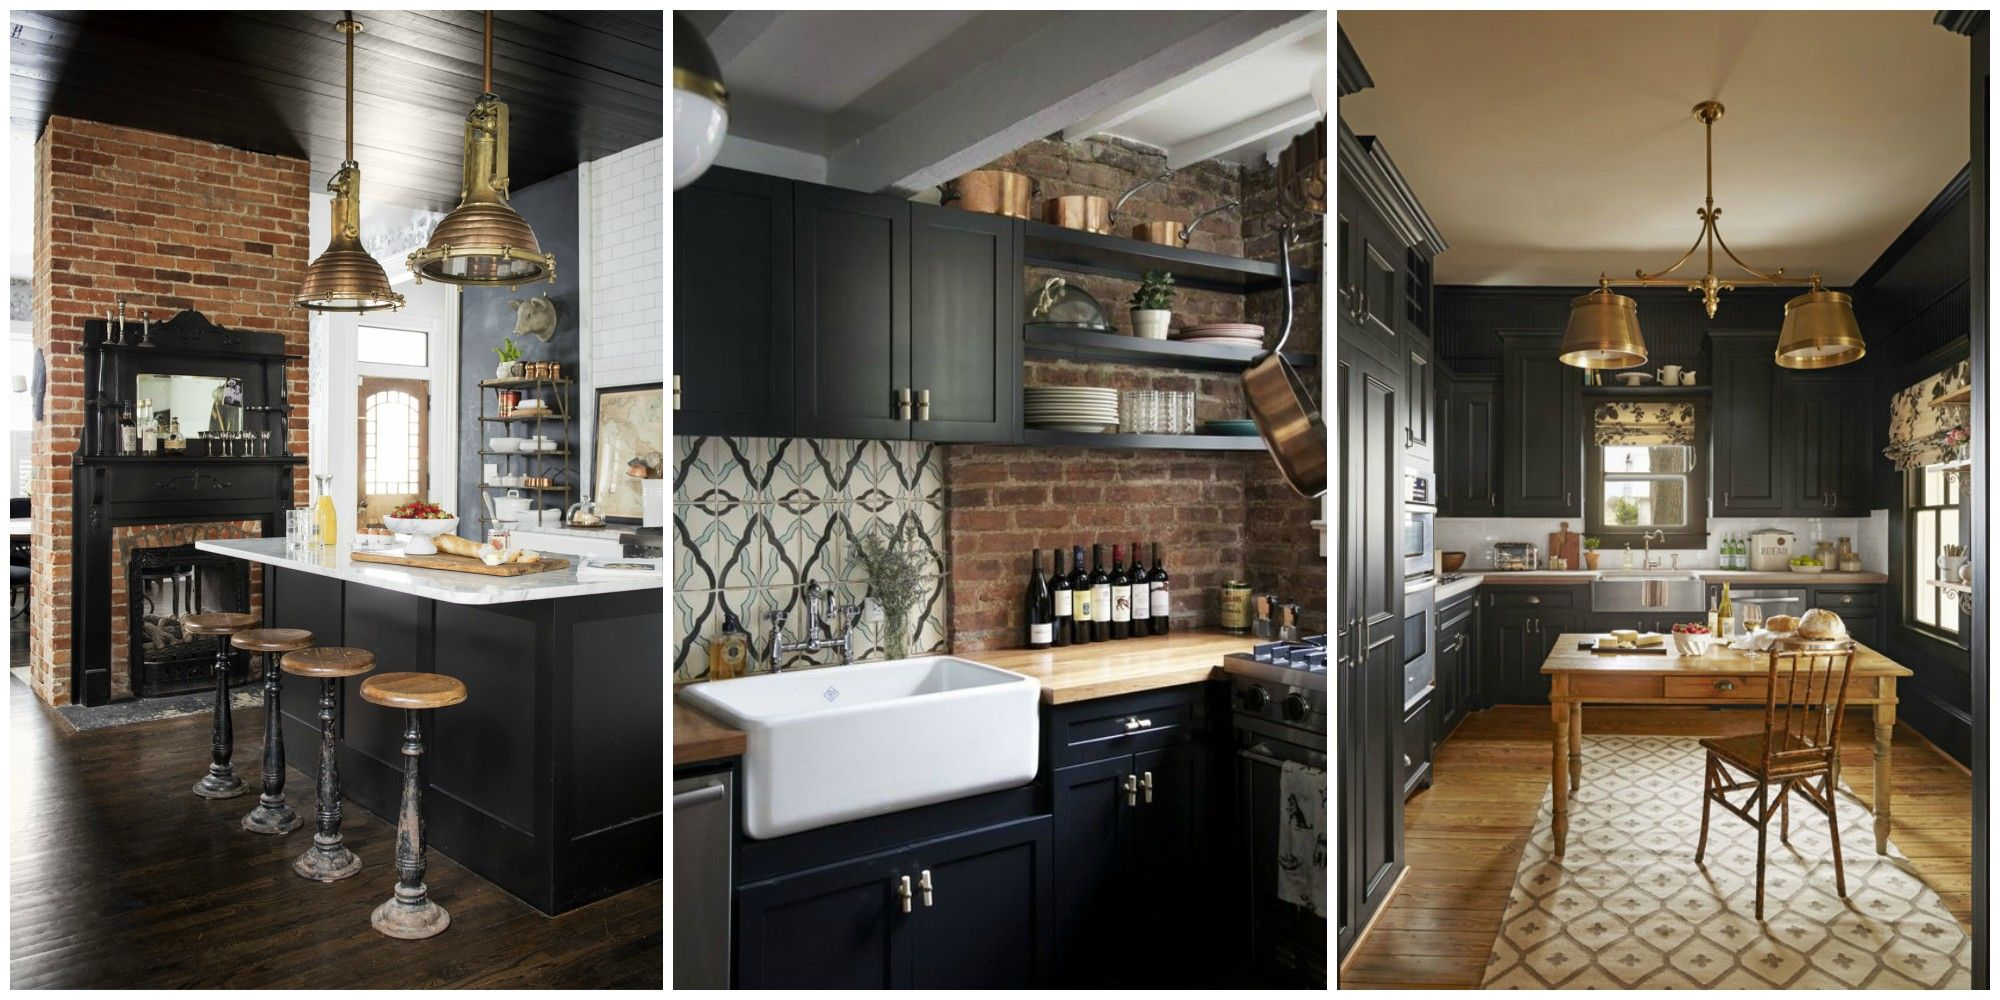 Black Design For Kitchen Black Kitchens Are The New White Kitchens Black Kitchen Cabinets